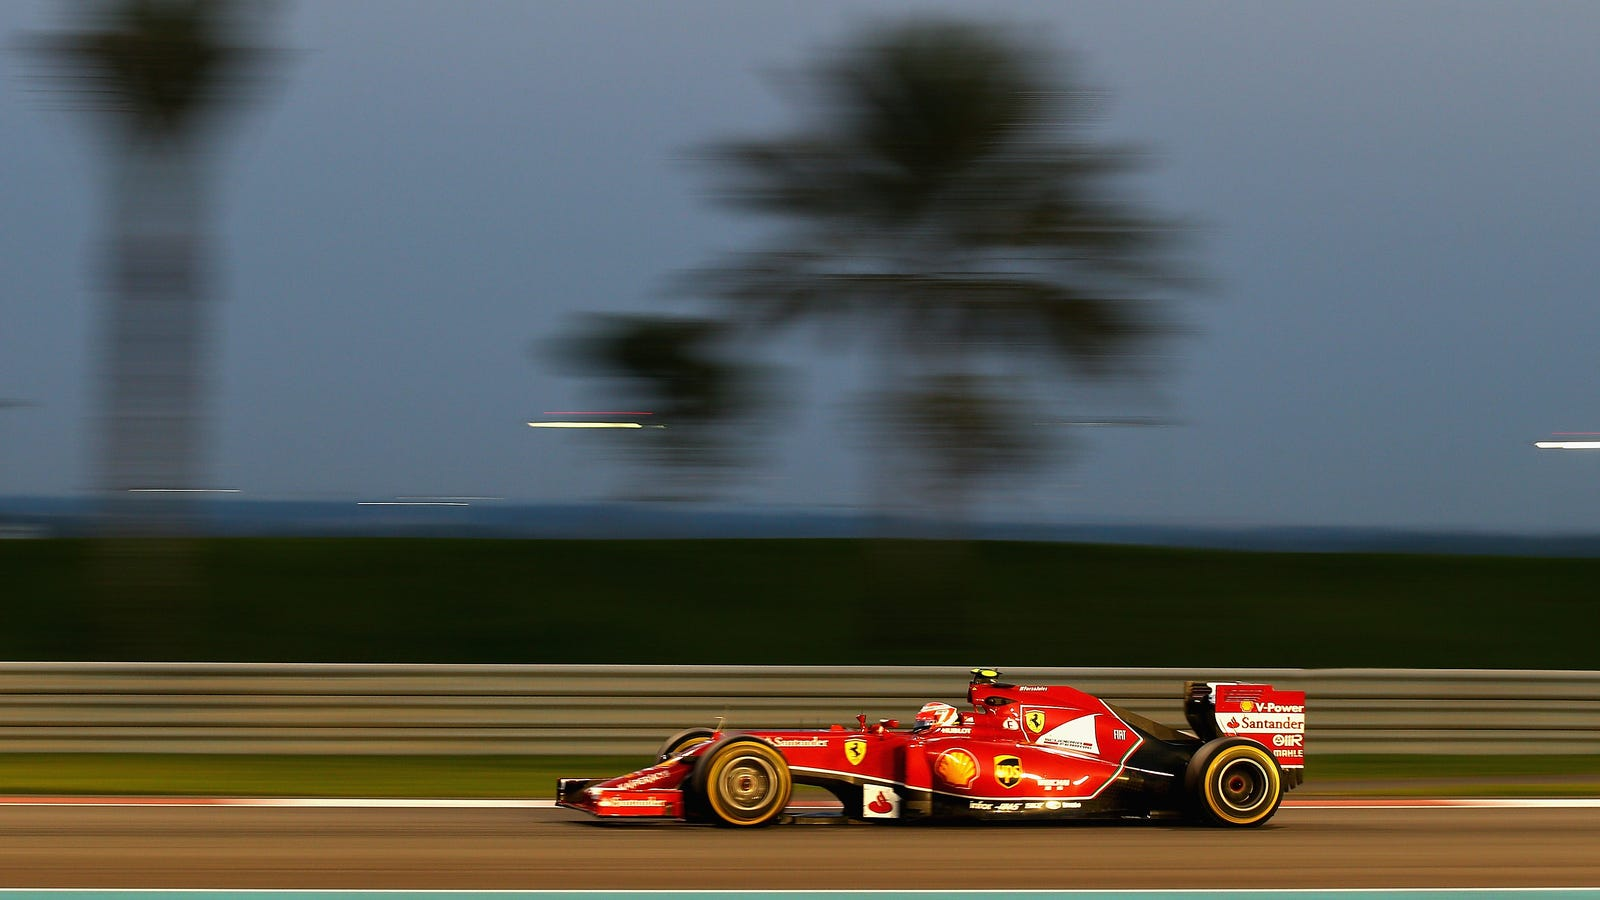 ferrari strategy Following the gradual shift in demand dynamics, ferrari has been allocating a lower portion of shipments to the european market in recent years, based on its strategy to manage waiting lists lately, ferrari has expressed its concerns about the future growth in european markets, as regulatory policies there.